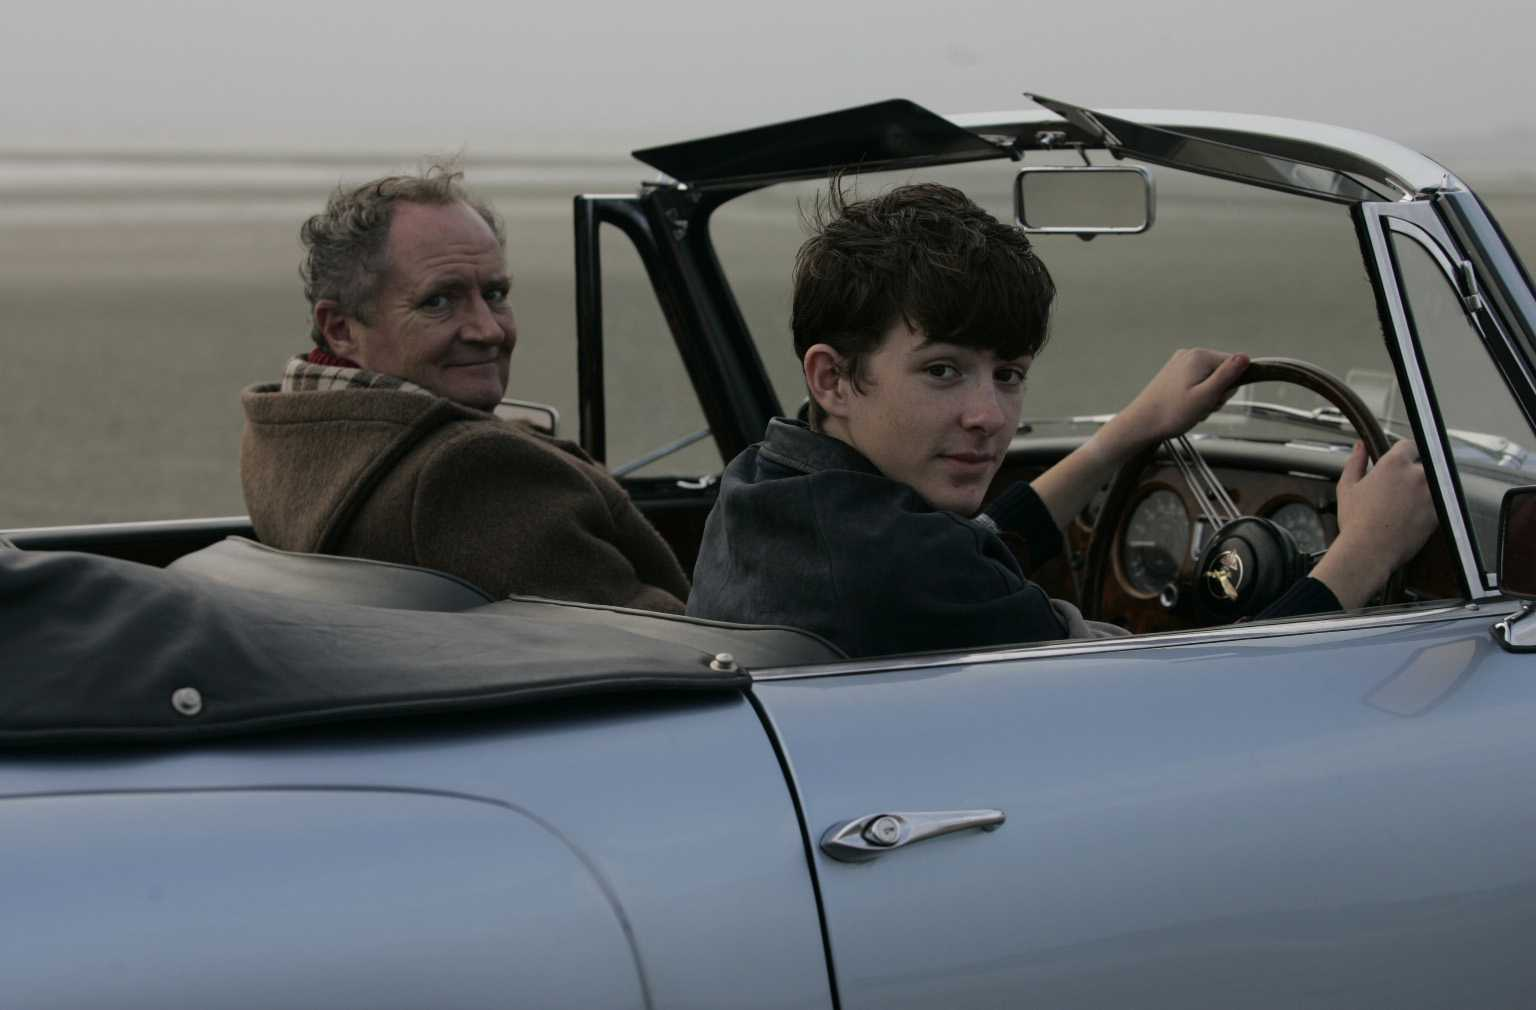 Arthur and Blake drive a car on the beach. Yes, it's quite safe, I assure you.